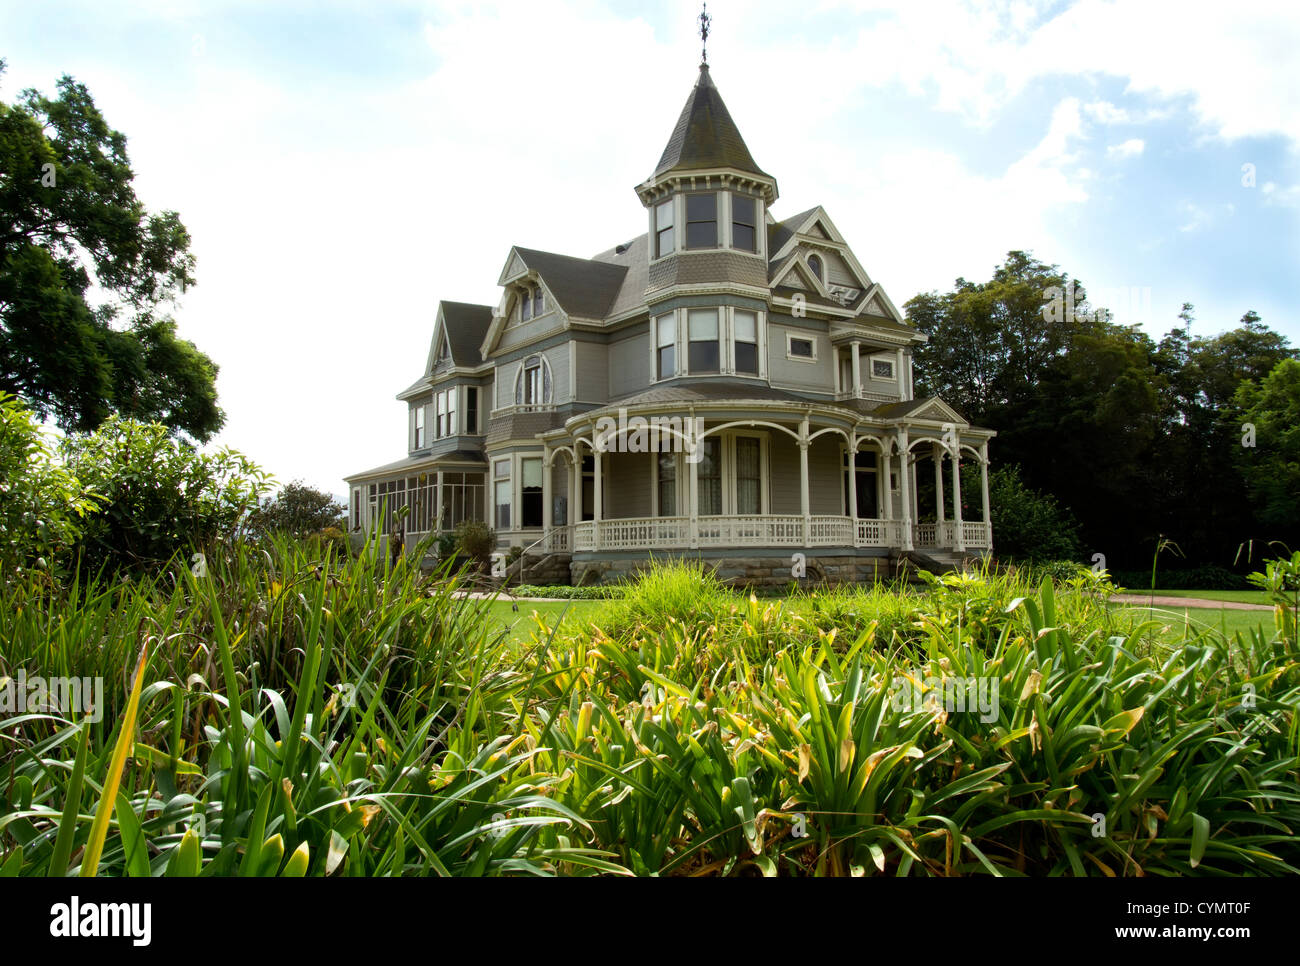 Historic Victorian Home - Stock Image